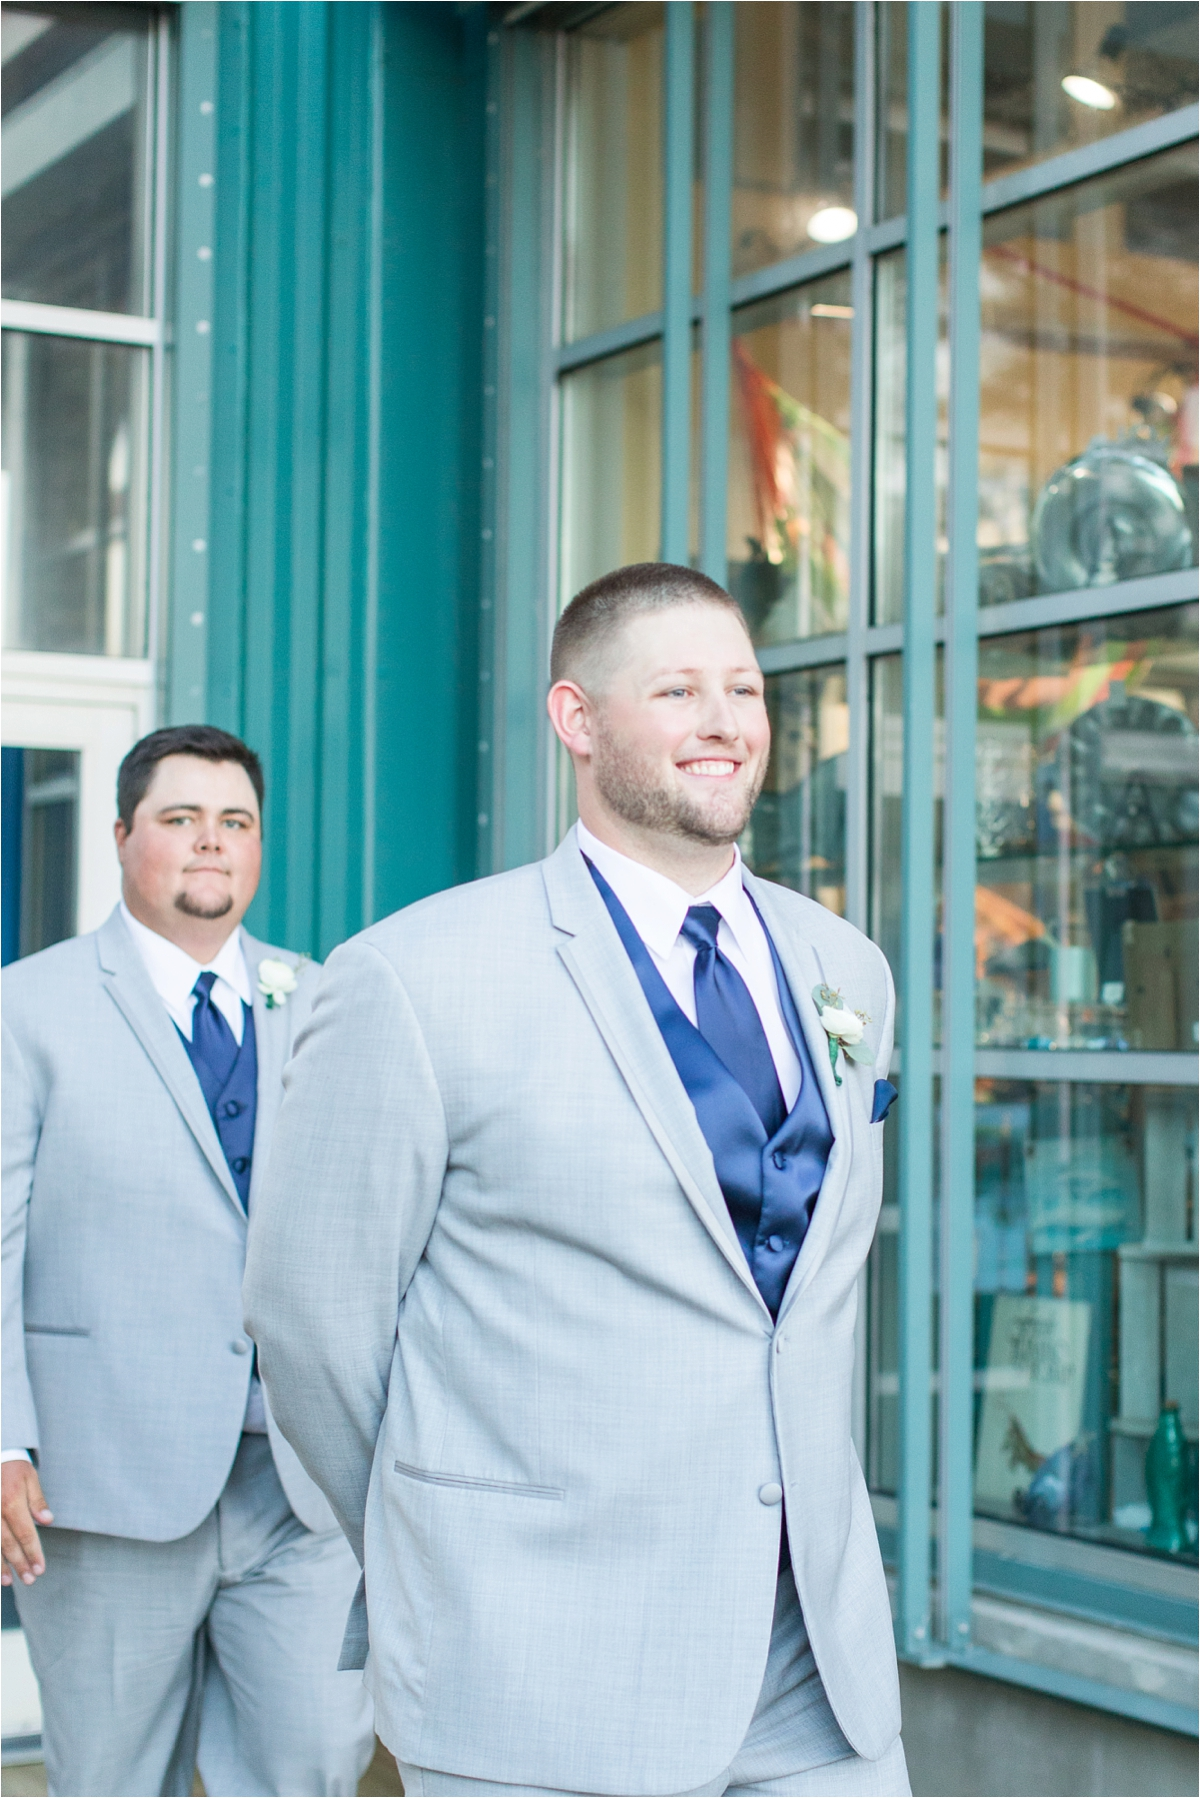 groom-first-look-at the end of the aisle-navy-blue-wedding-vest-tie